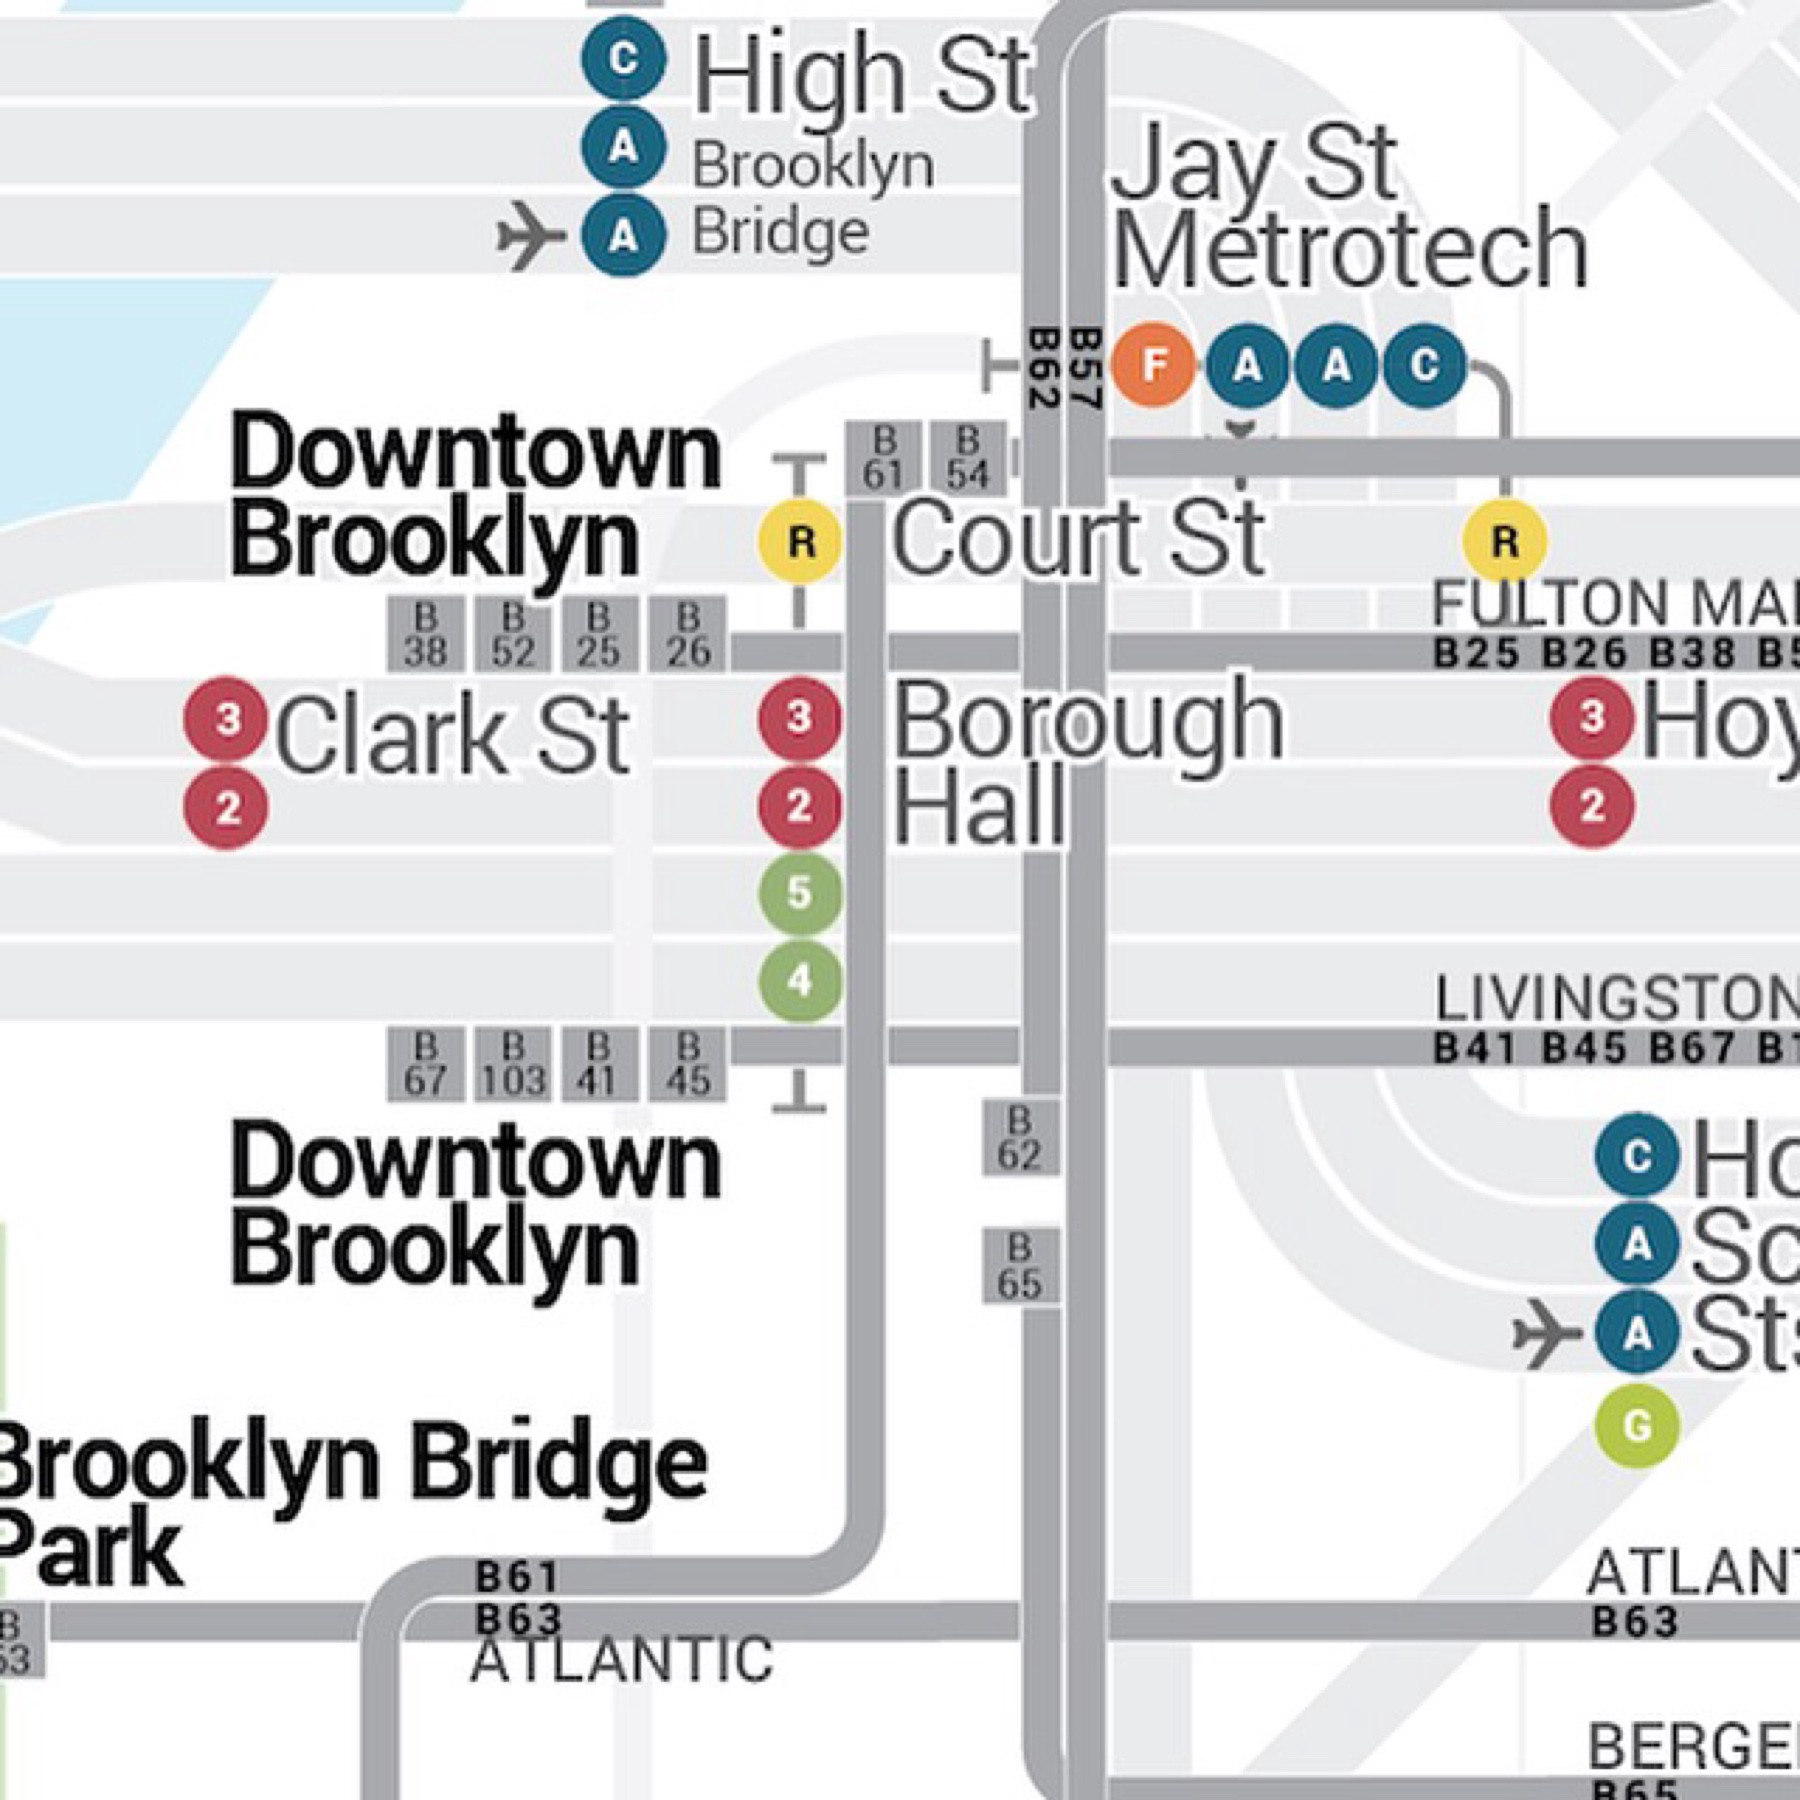 Basic Nyc Subway Map App.Mapping Nyc Transit All Of It Anthony Denaro Medium